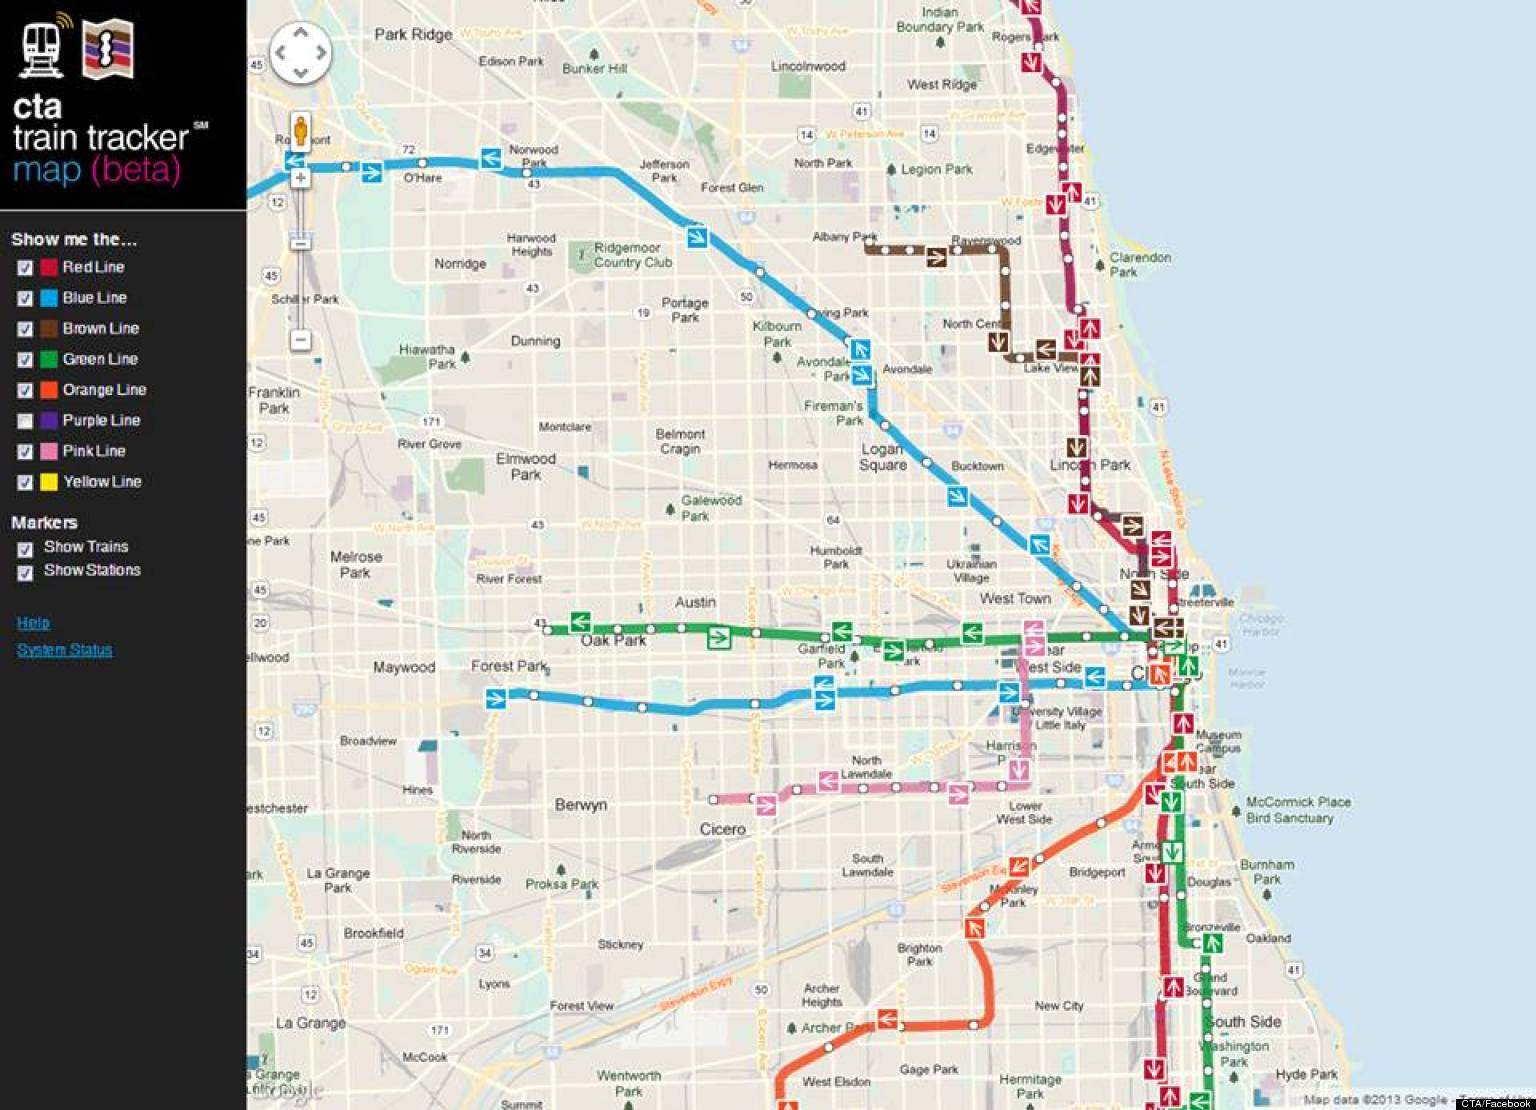 cta train tracker map debuts new chicago train app shows your  - cta train tracker map debuts new chicago train app shows your route inrealtime  huffpost